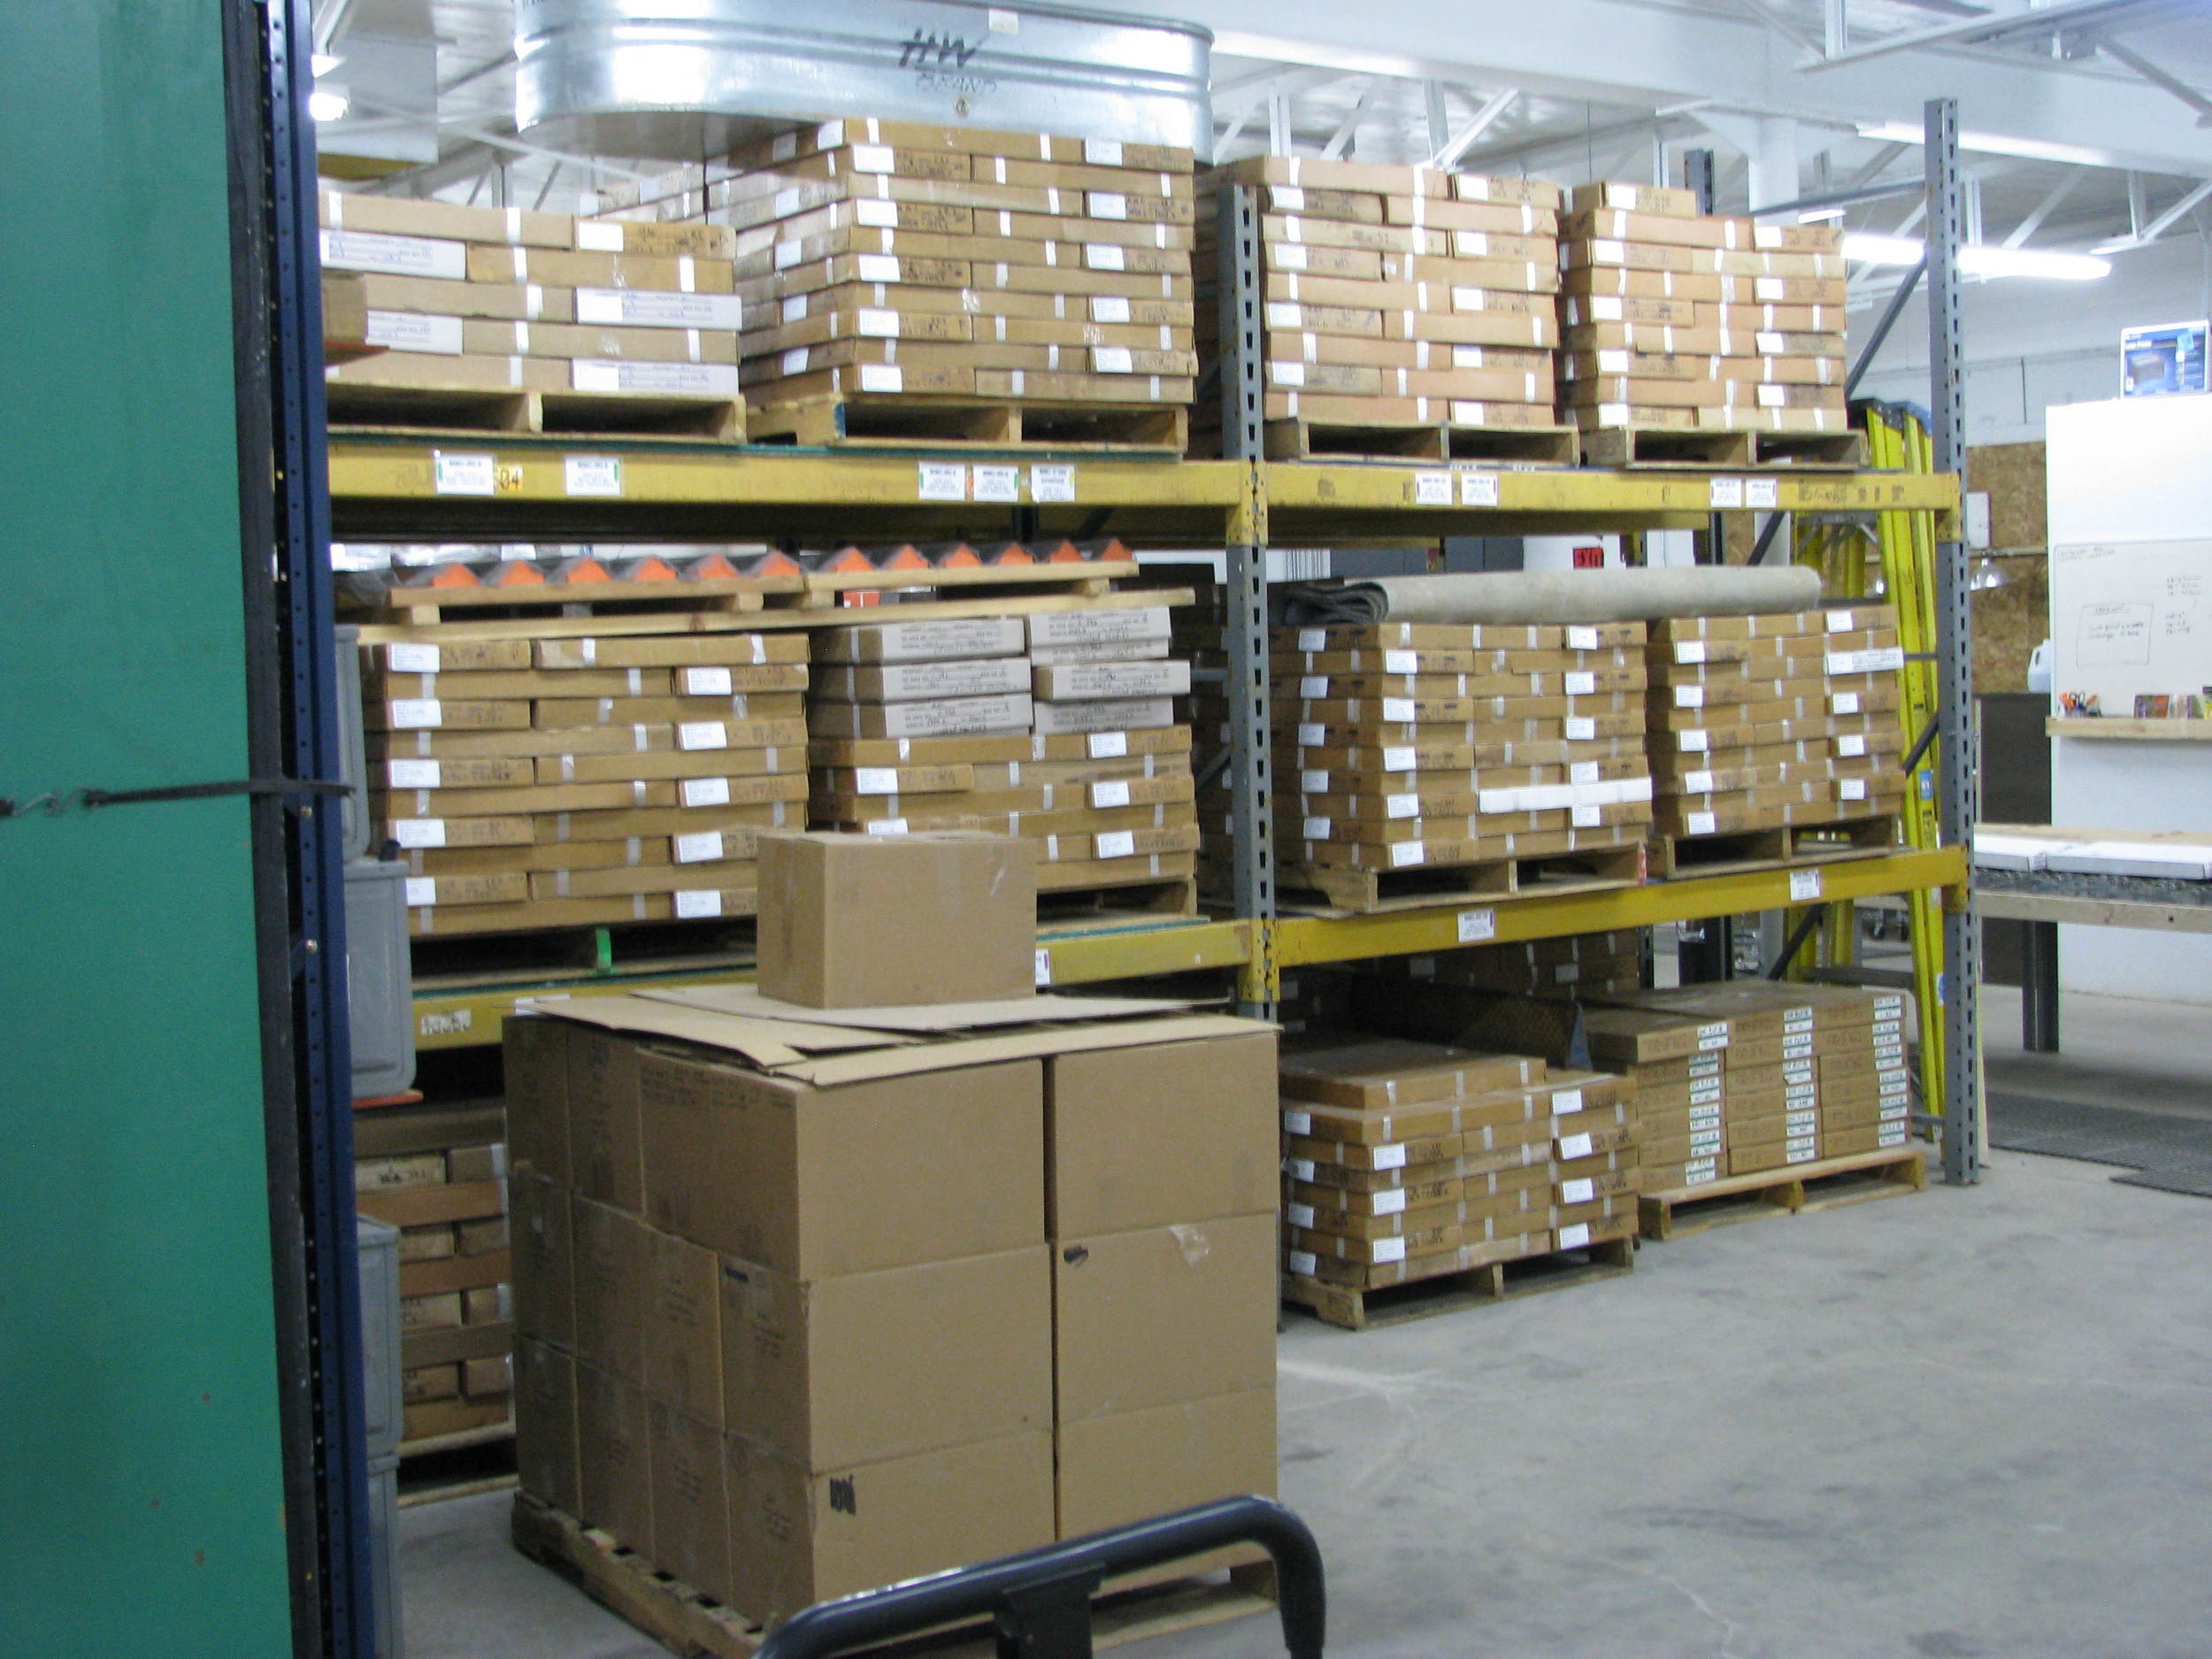 North East View of Pallet Racks 14  and 15.JPG